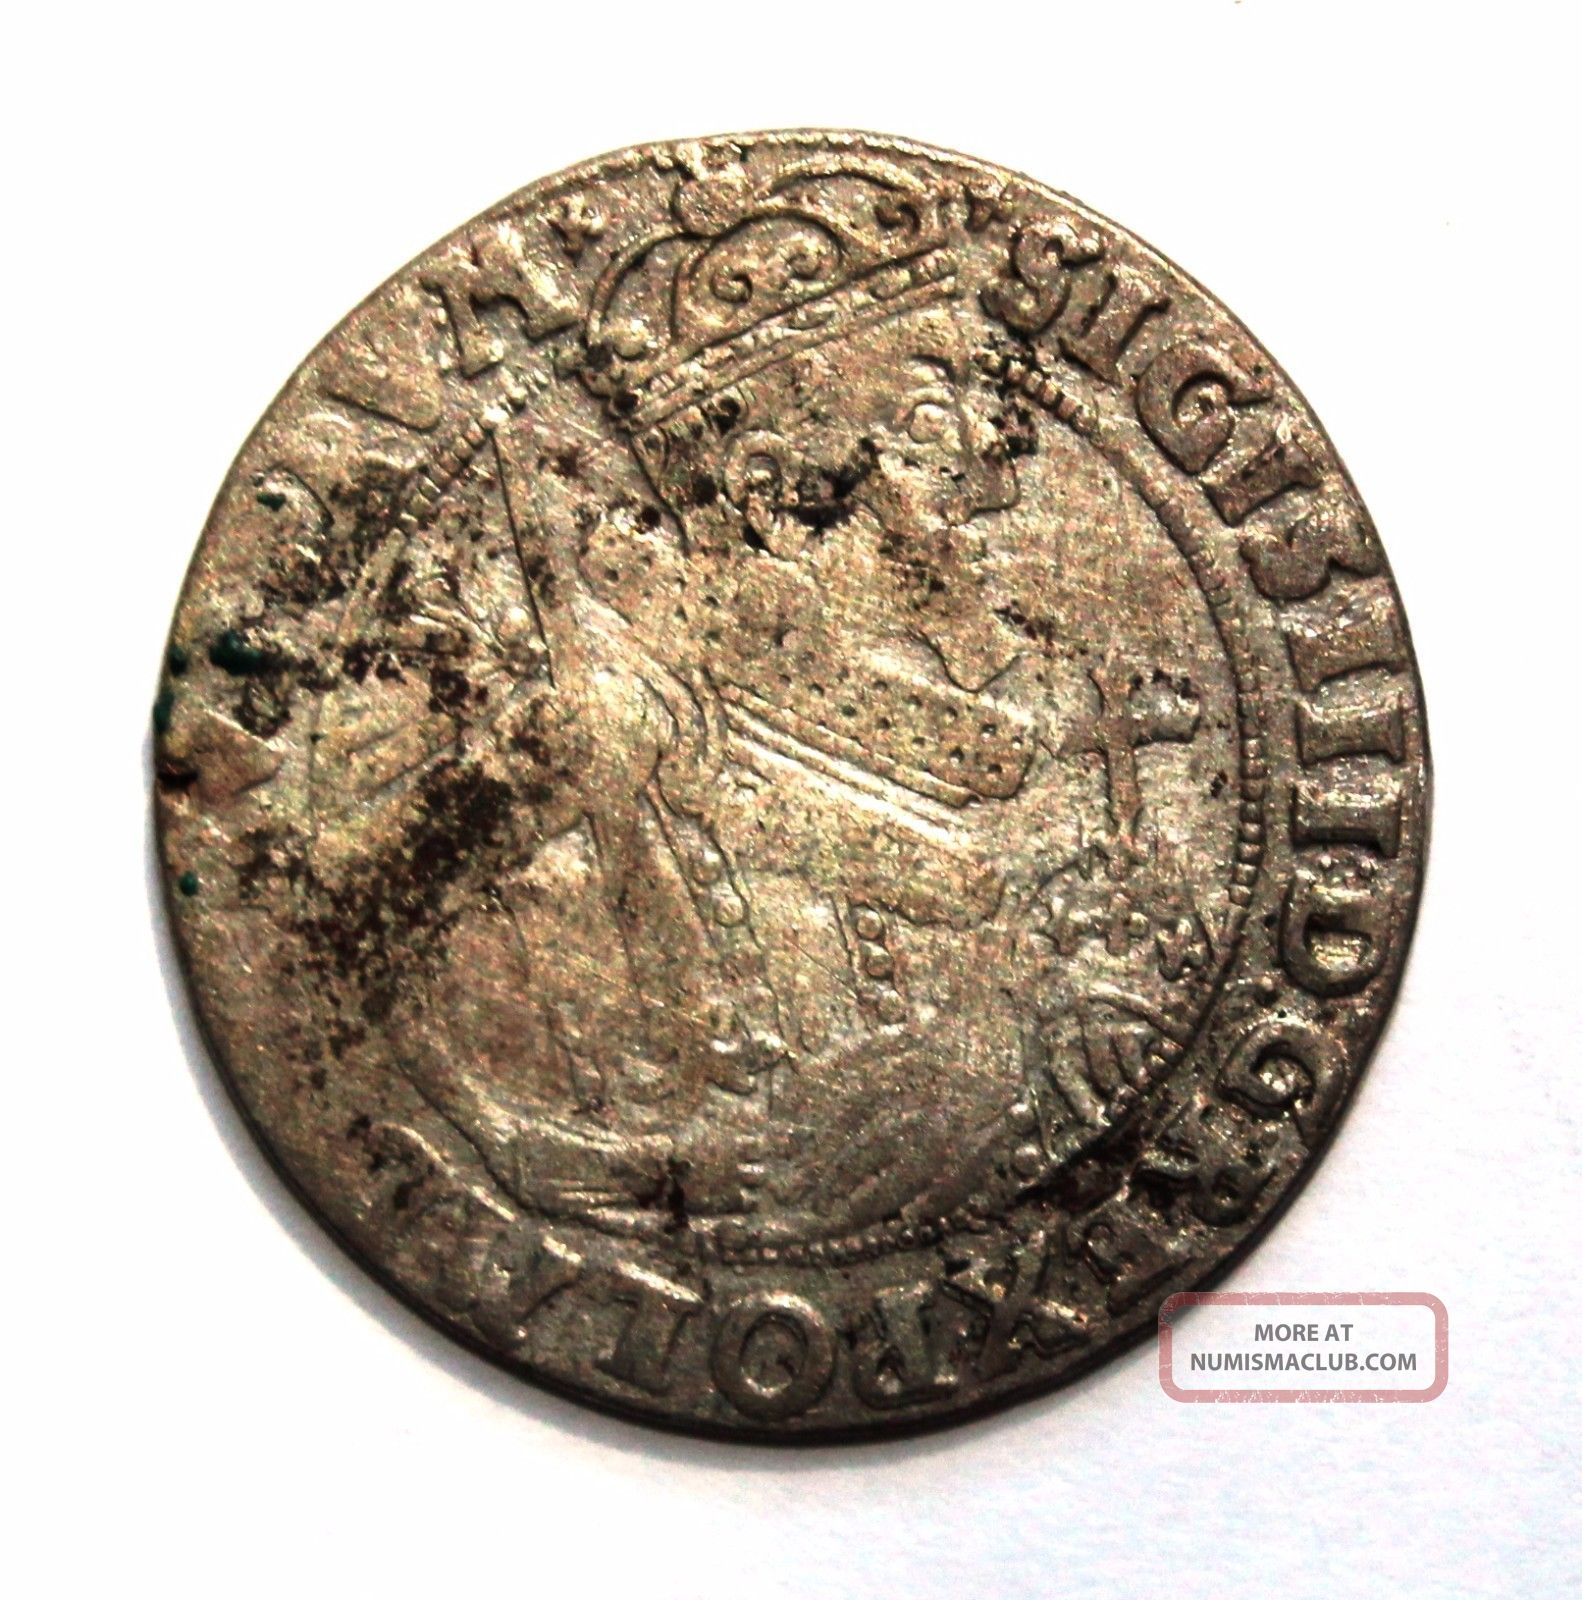 Poland - Sigismund Iii Vasa Ort - 1/4 Thaler 1624 Ad - Europe photo